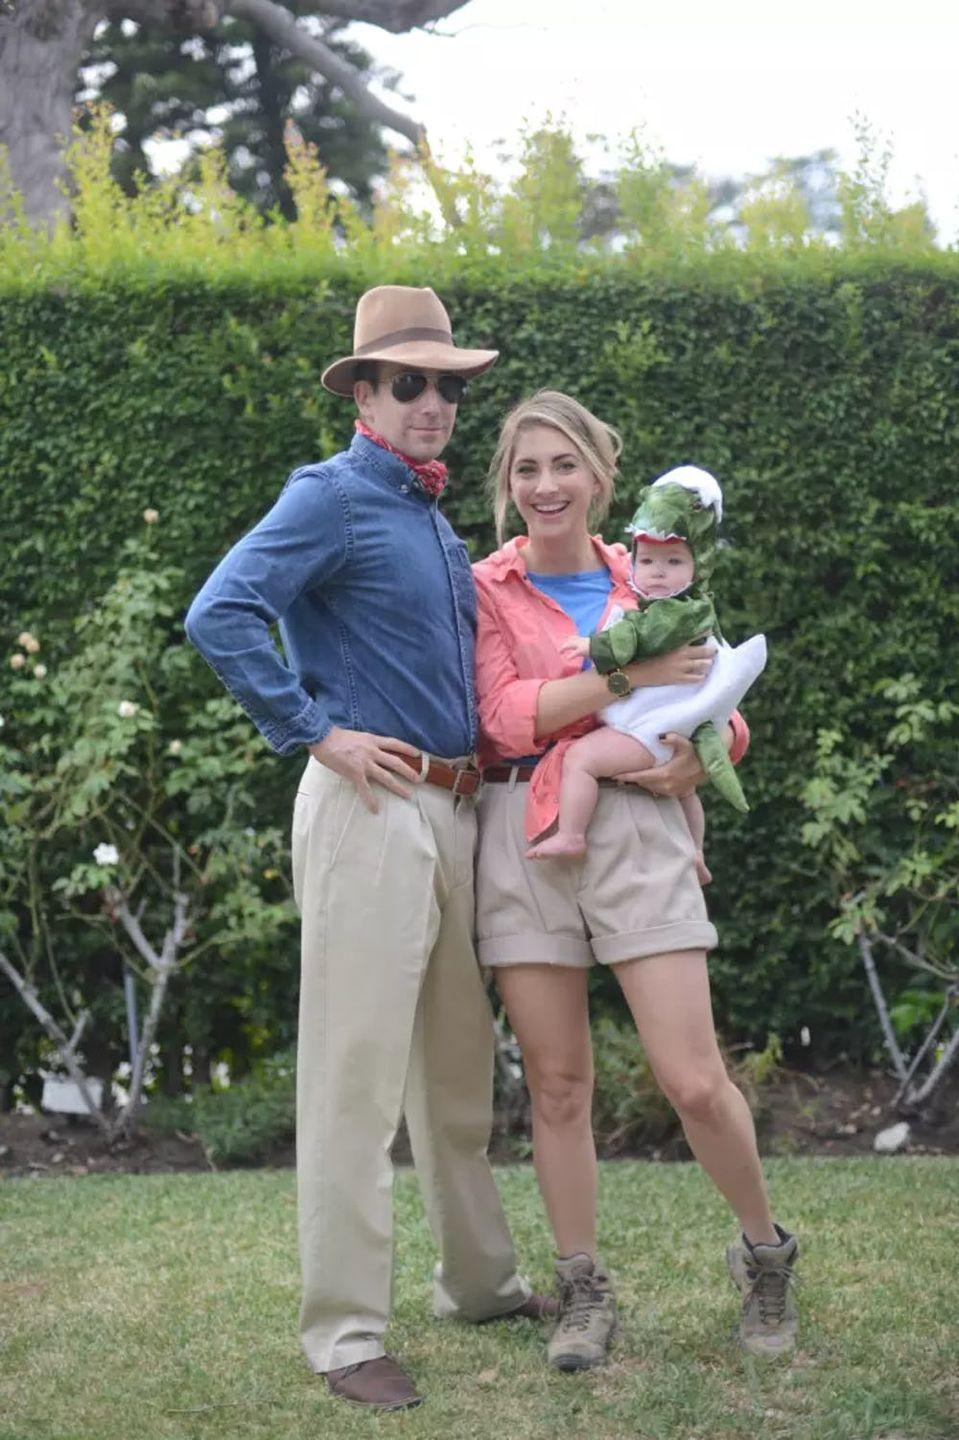 """<p>Believe it or not, a homemade <em>Jurassic Park</em> costume is even better than the one from the newest movie: You've got the option to forego the heels!</p><p><strong>Get the tutorial at <a href=""""https://cupcakesandcashmere.com/series-stories/five-things-halloween-traditions"""" rel=""""nofollow noopener"""" target=""""_blank"""" data-ylk=""""slk:Cupcakes and Cashmere"""" class=""""link rapid-noclick-resp"""">Cupcakes and Cashmere</a>. </strong></p><p><a class=""""link rapid-noclick-resp"""" href=""""https://www.amazon.com/s?k=khaki+shorts&ref=nb_sb_noss_2&tag=syn-yahoo-20&ascsubtag=%5Bartid%7C10050.g.29074815%5Bsrc%7Cyahoo-us"""" rel=""""nofollow noopener"""" target=""""_blank"""" data-ylk=""""slk:SHOP KHAKI SHORTS"""">SHOP KHAKI SHORTS</a></p>"""